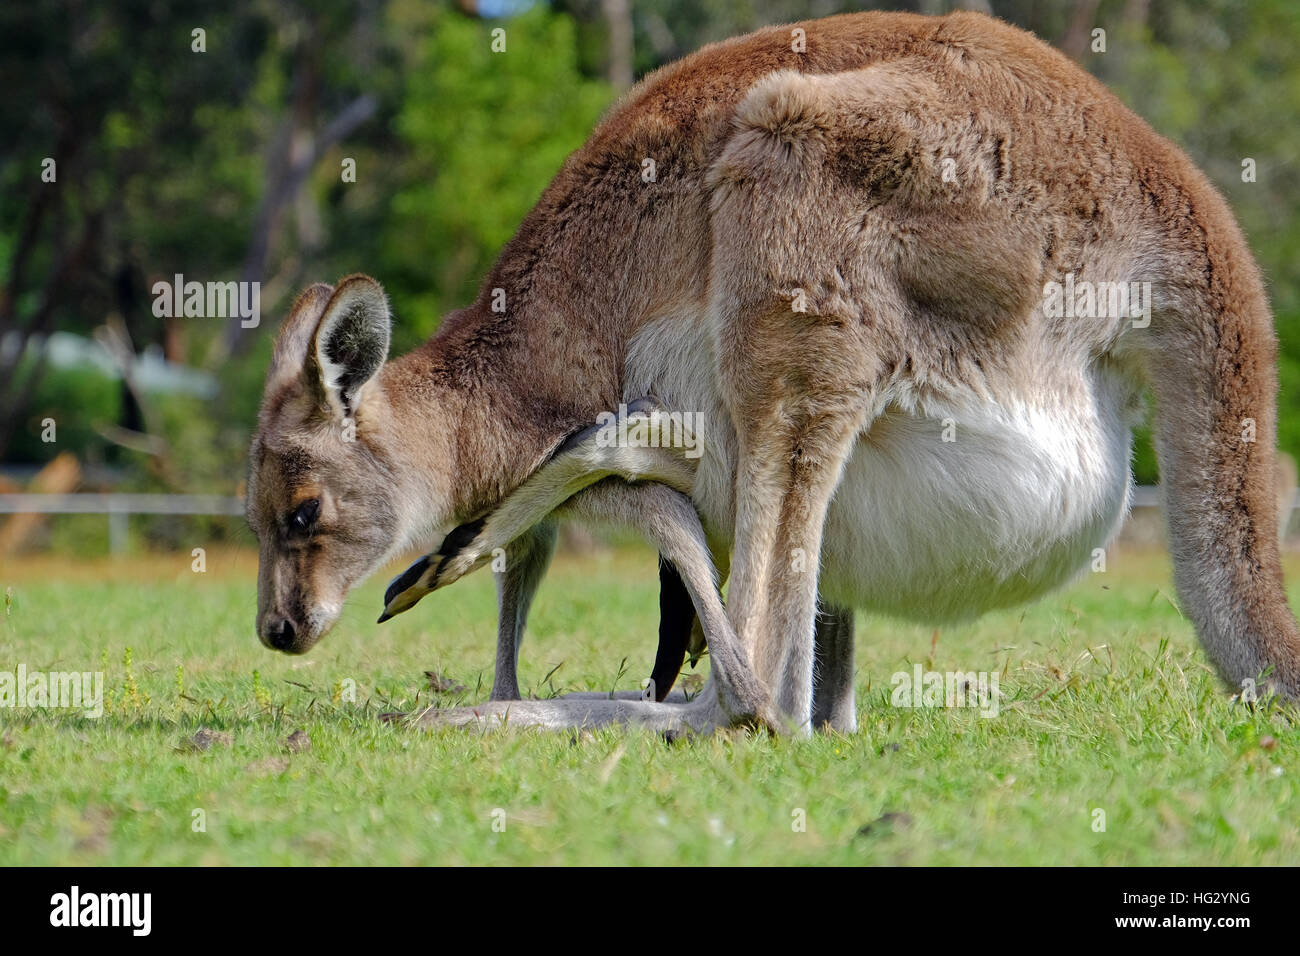 A female kangaroo carrying a juvenile in her pouch - Stock Image